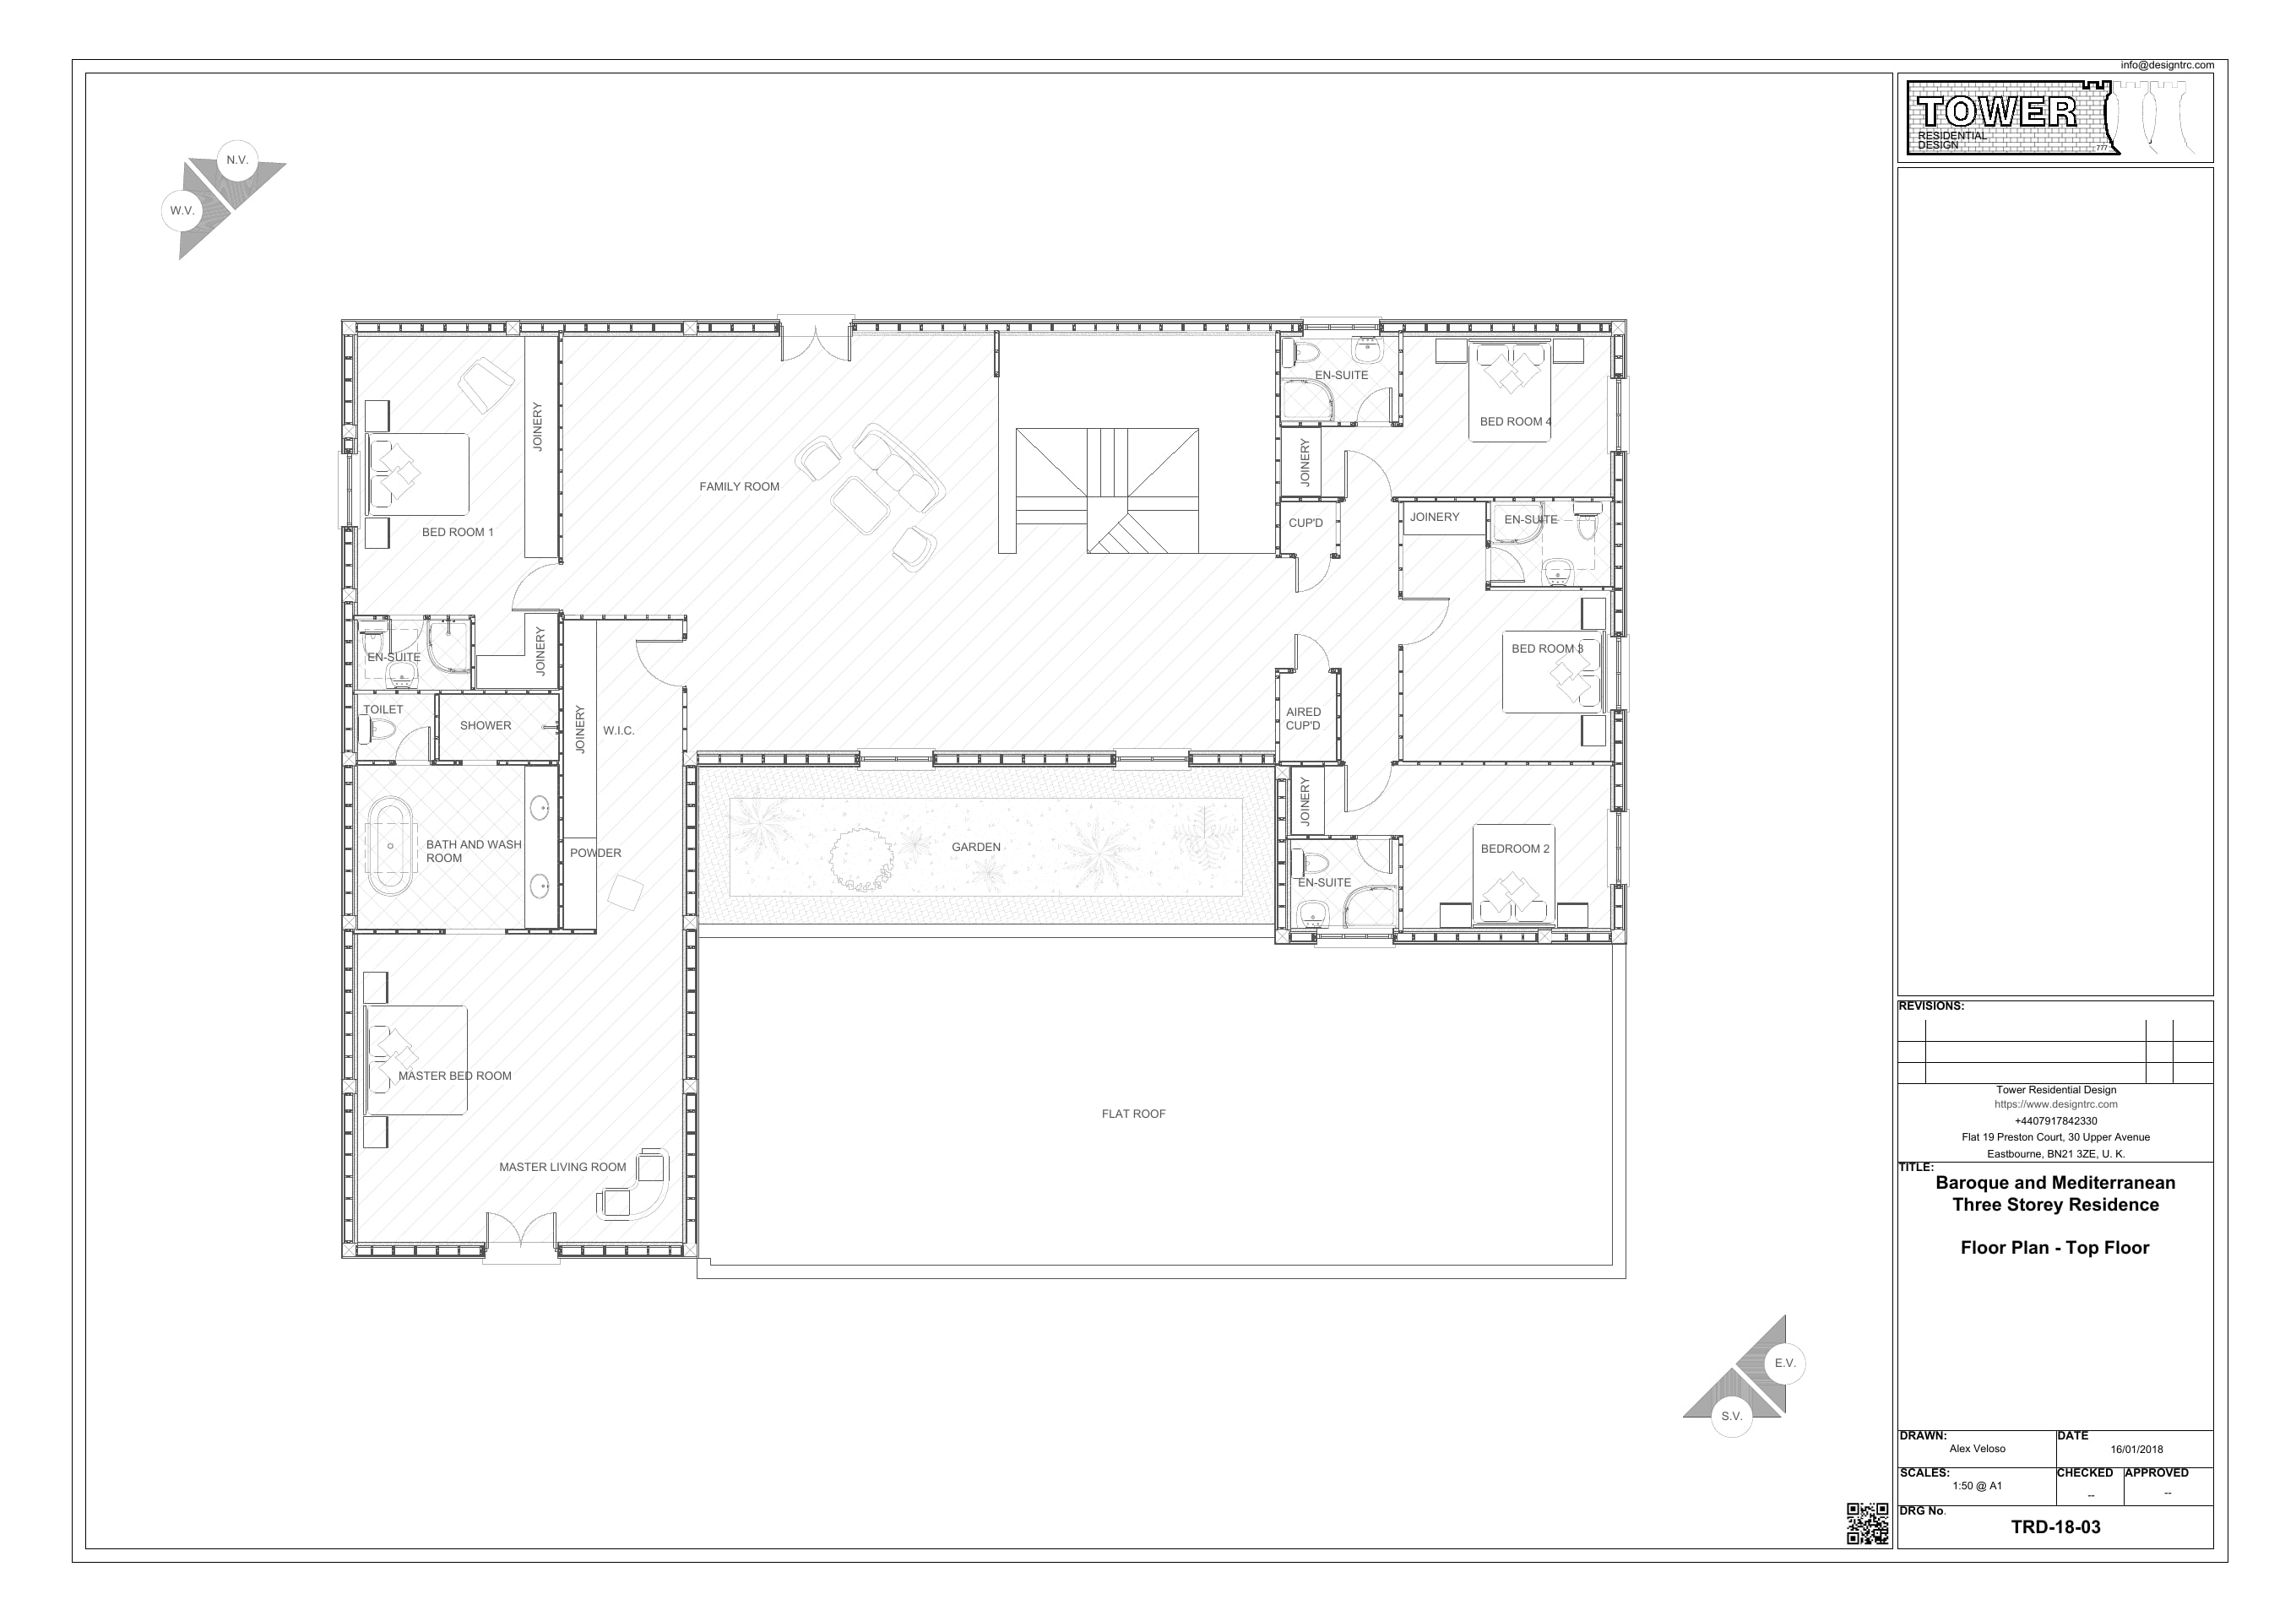 Baroque & Mediterranean- Upper Floor Plan